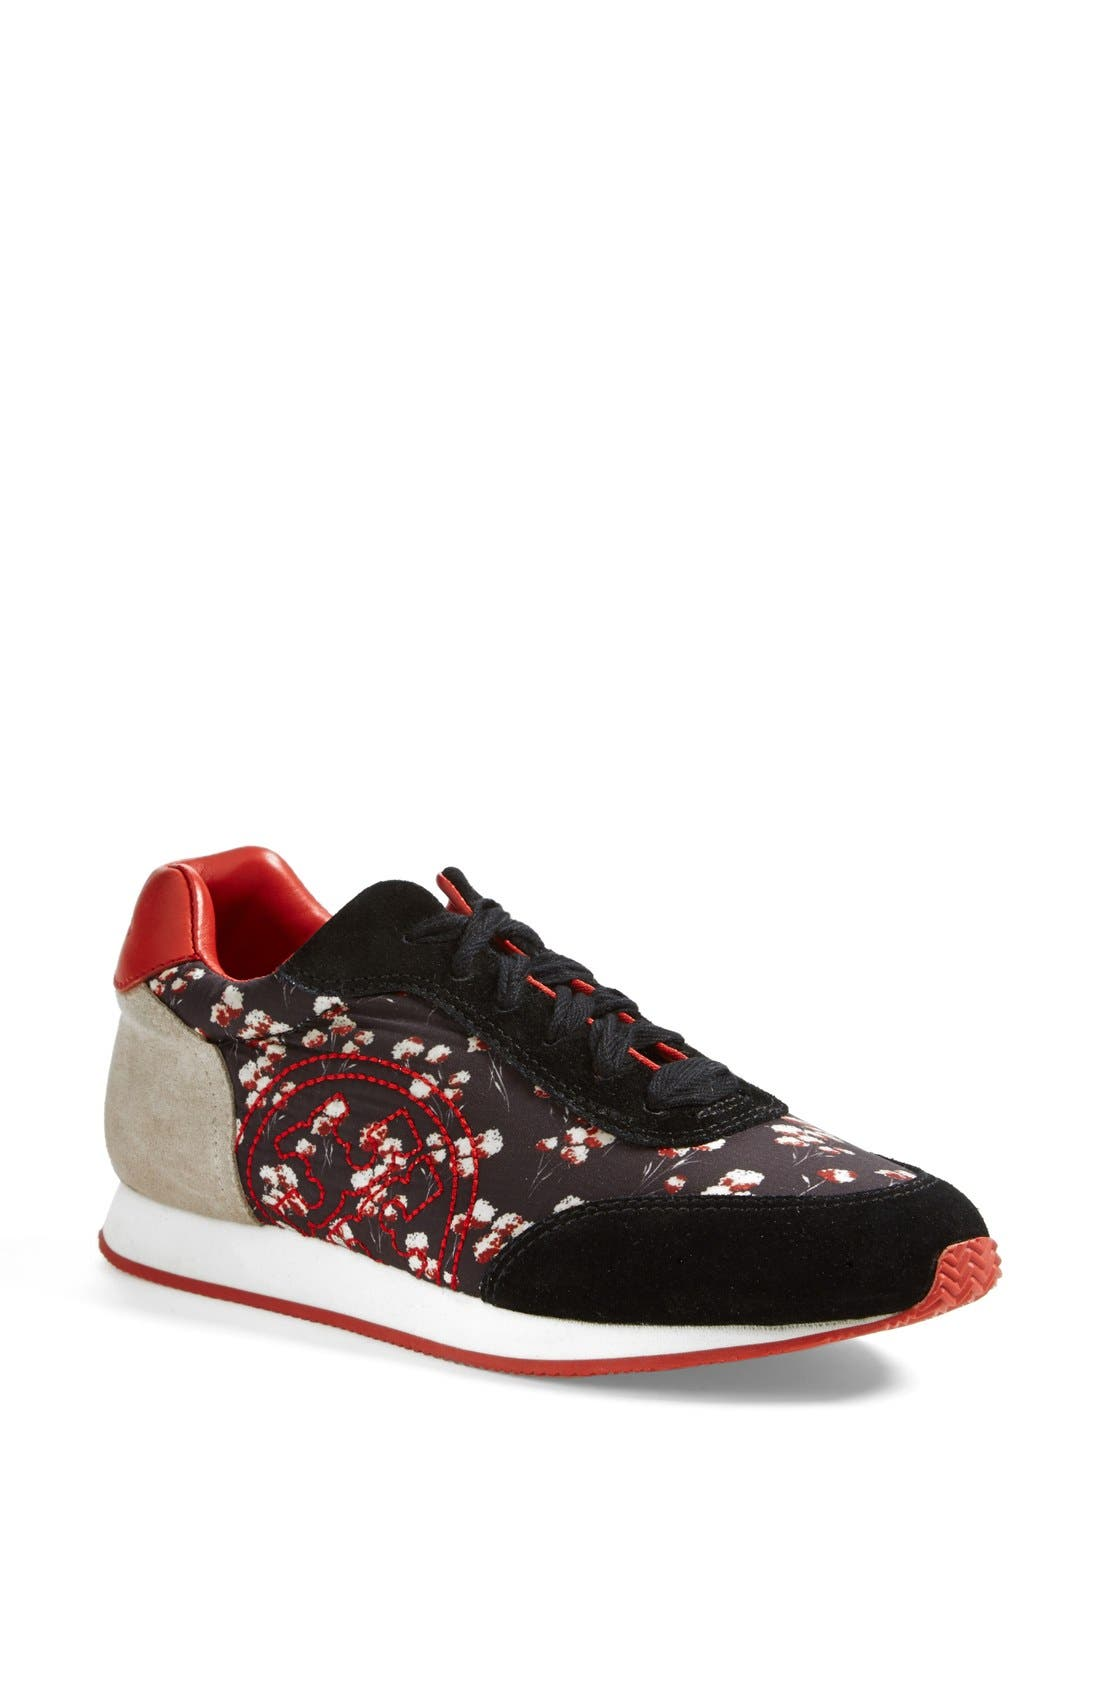 Alternate Image 1 Selected - Tory Burch 'Delancey' Print Sneaker